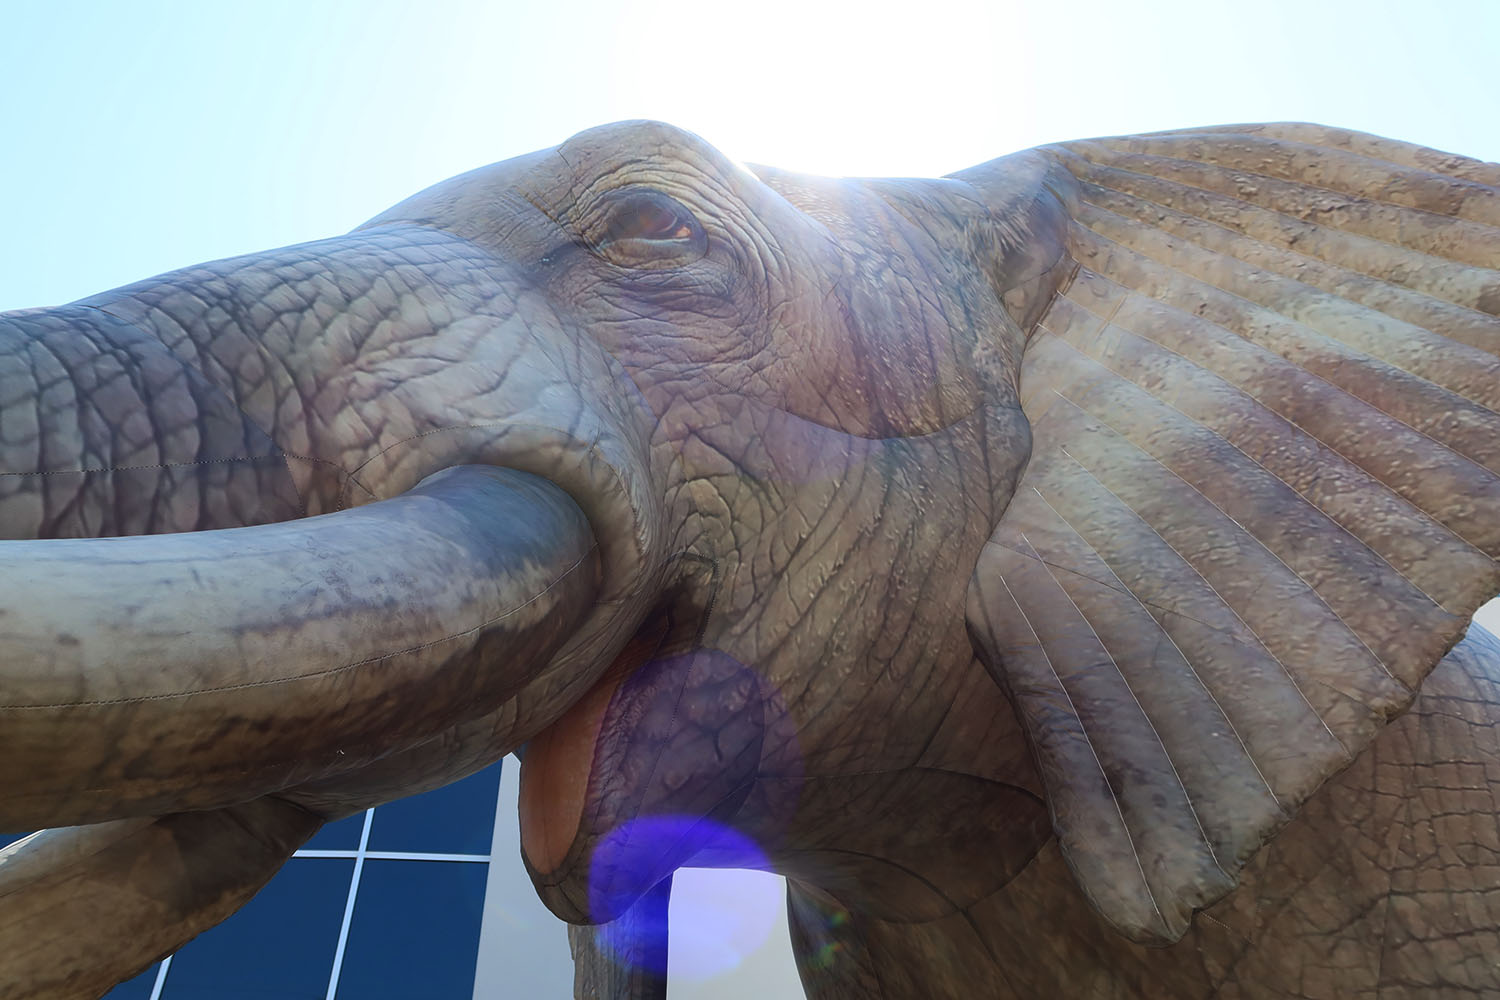 elephant-replica-close-up